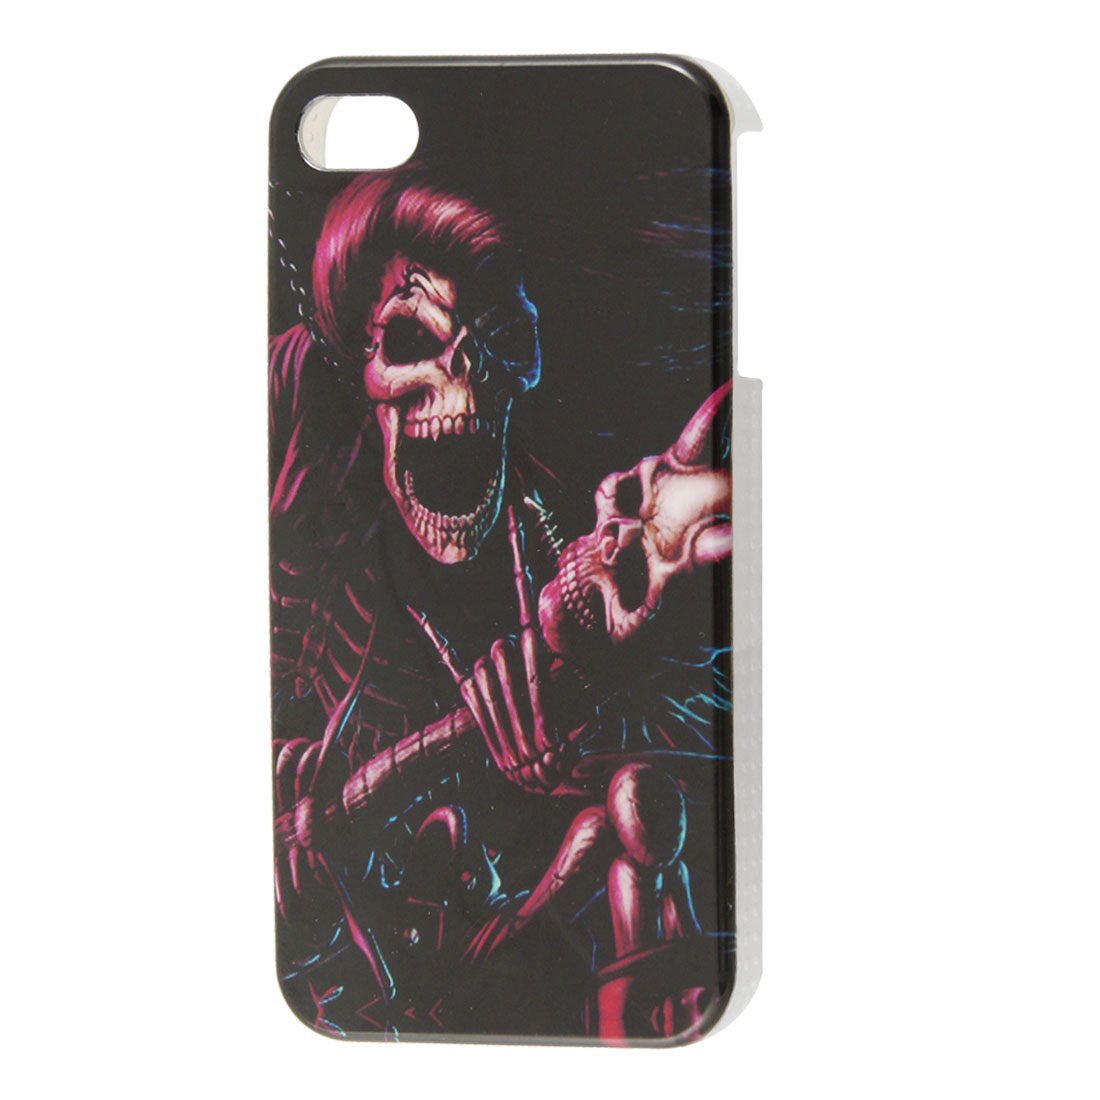 Burgundy Skull Pattern IMD Plastic Black Back Case for iPhone 4 4S 4GS